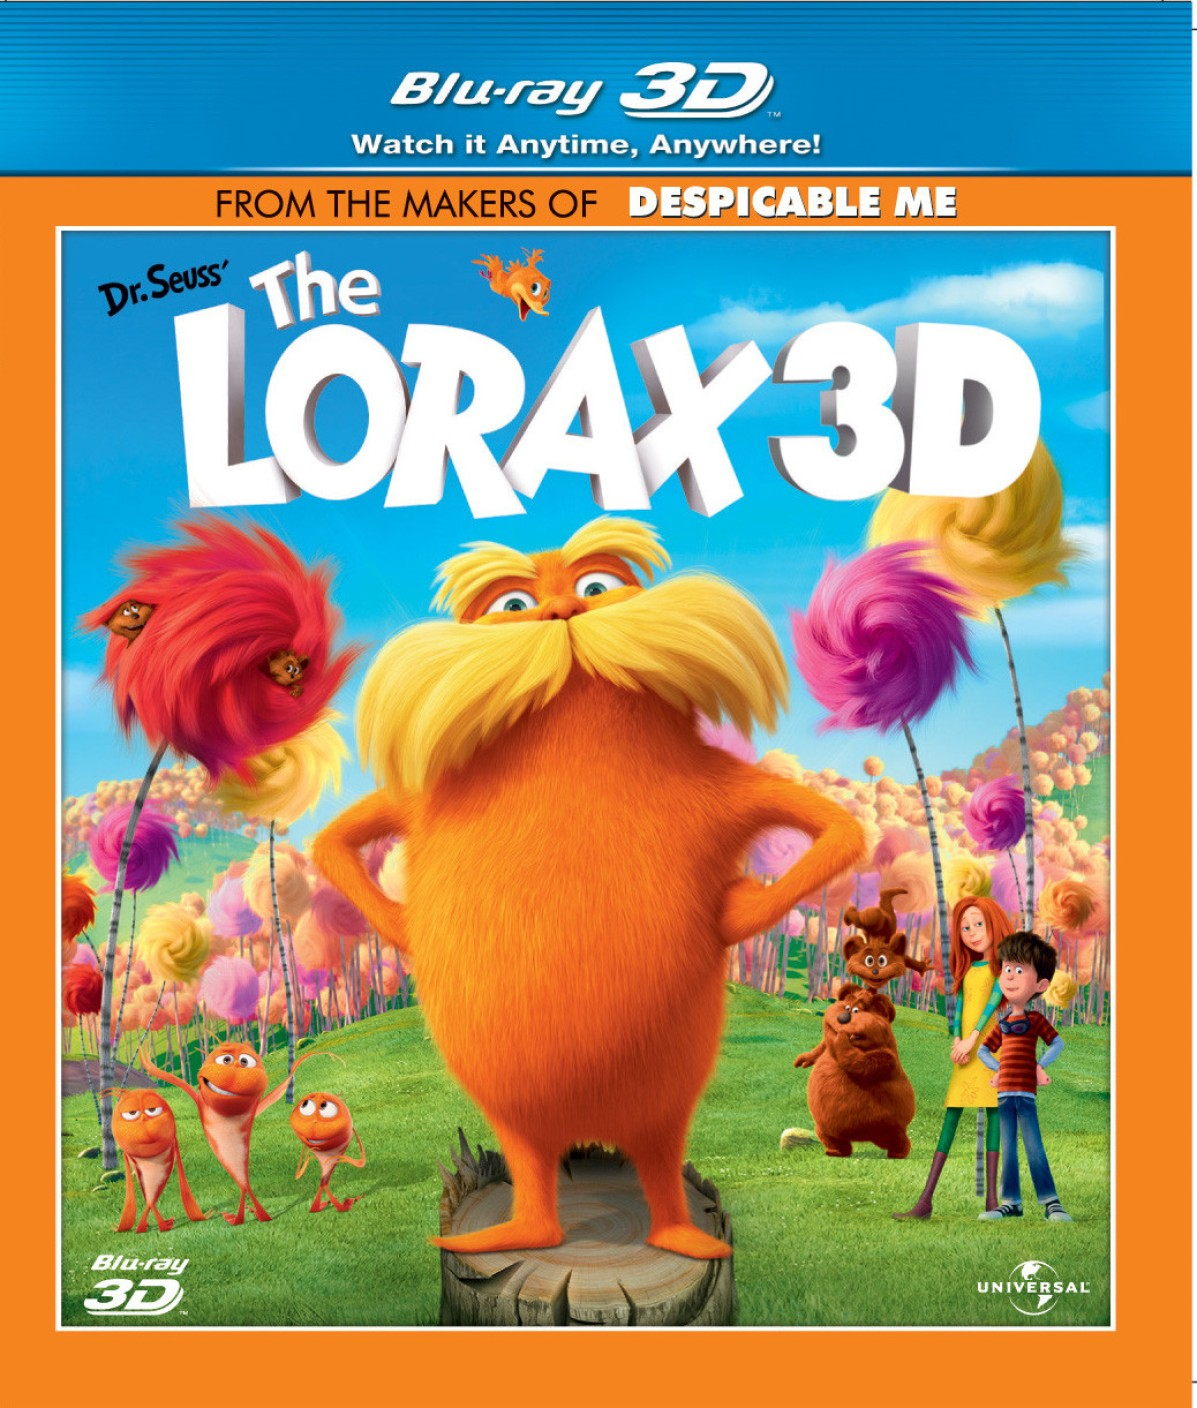 Dr Seuss The Lorax Full Movie In English: The Lorax 3D Price In India